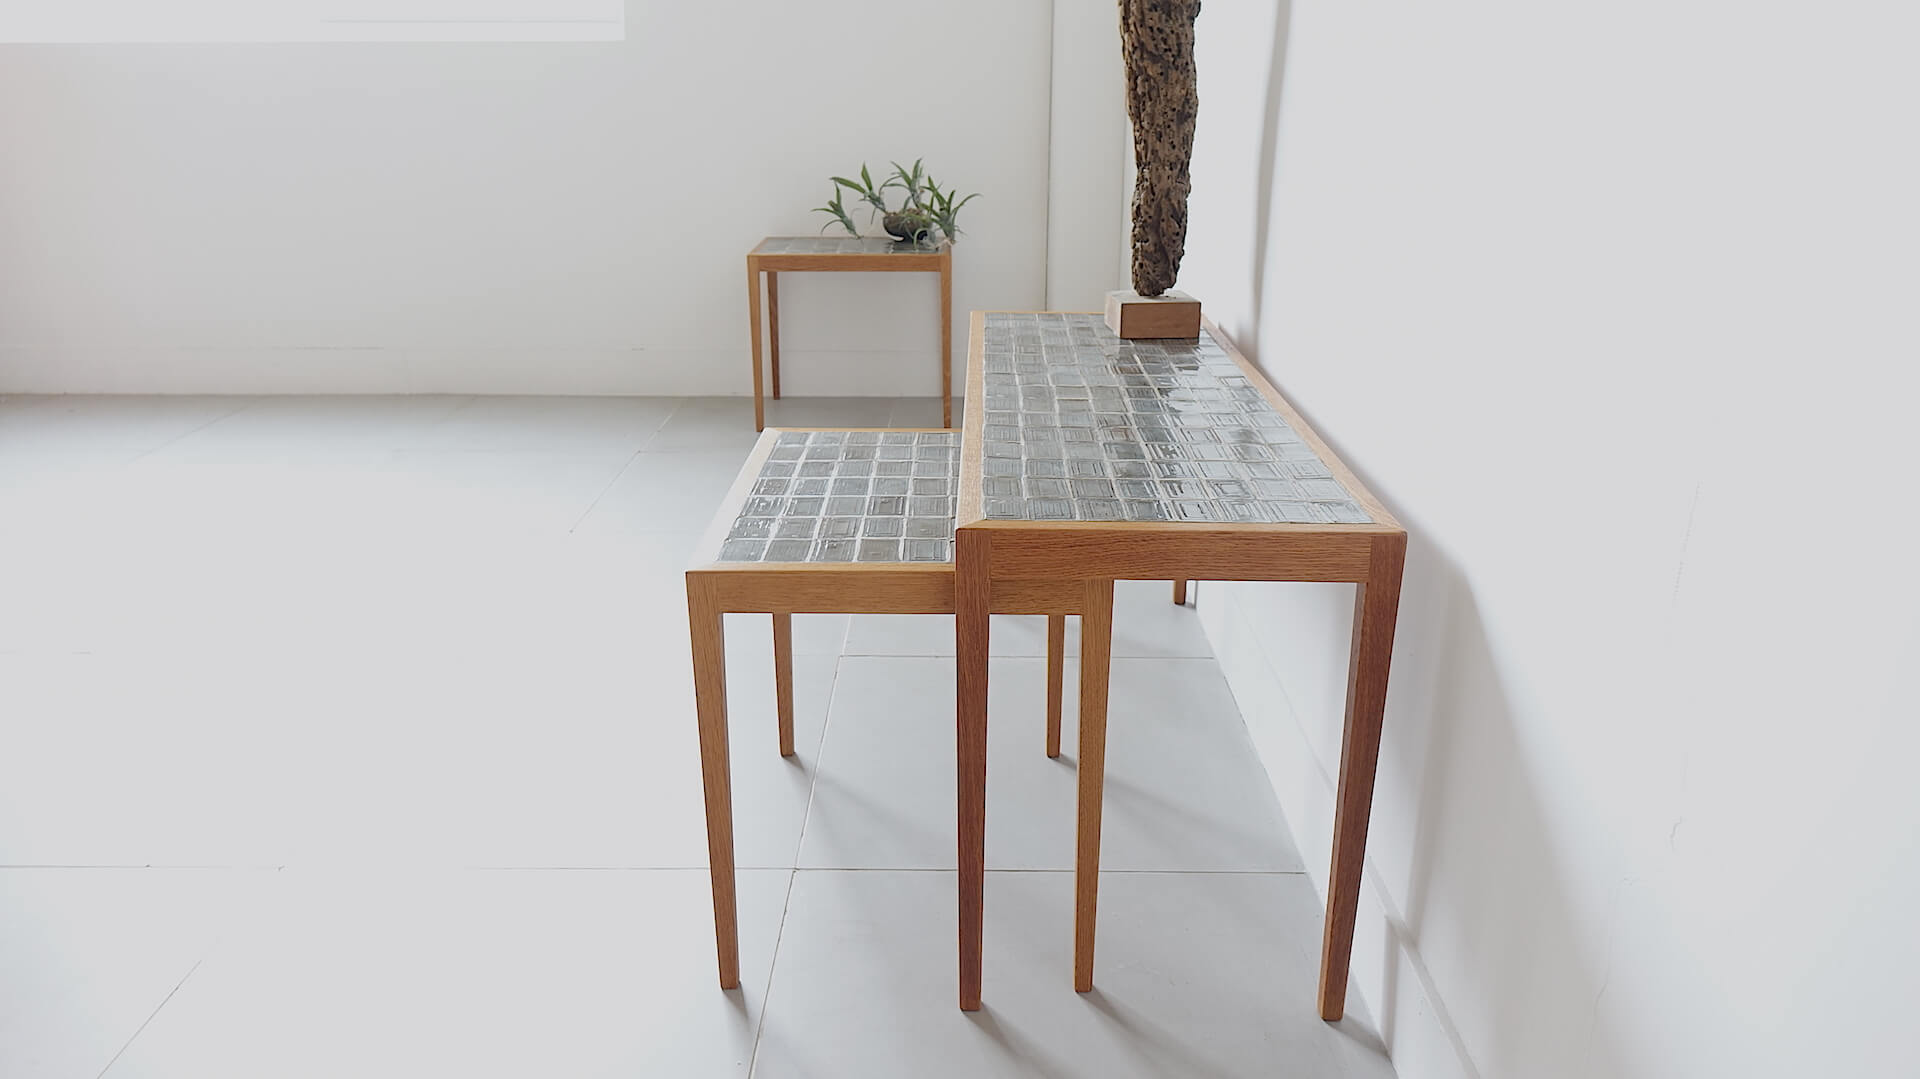 Tiletop nesting table for Illums Bolighus